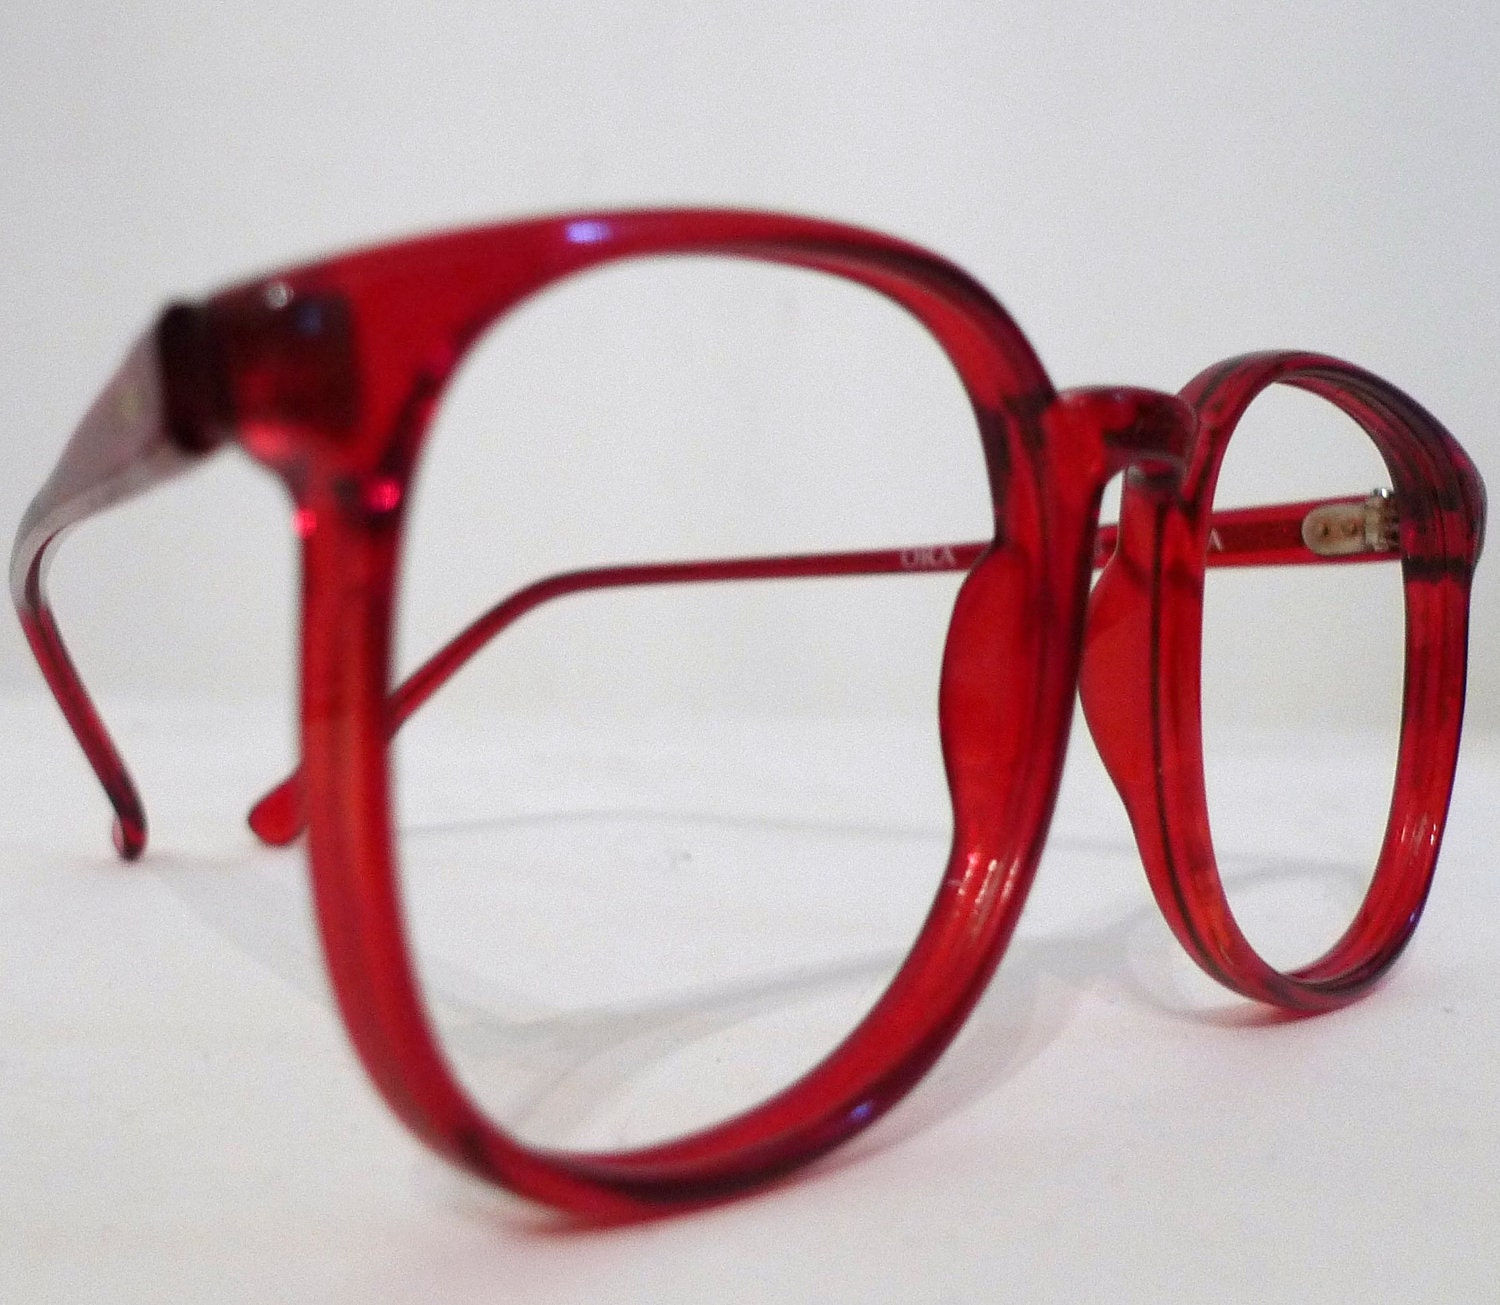 Big Red Frame Glasses : 1980s Scarlet Red Big Horn Rimmed Eyeglasses Frames